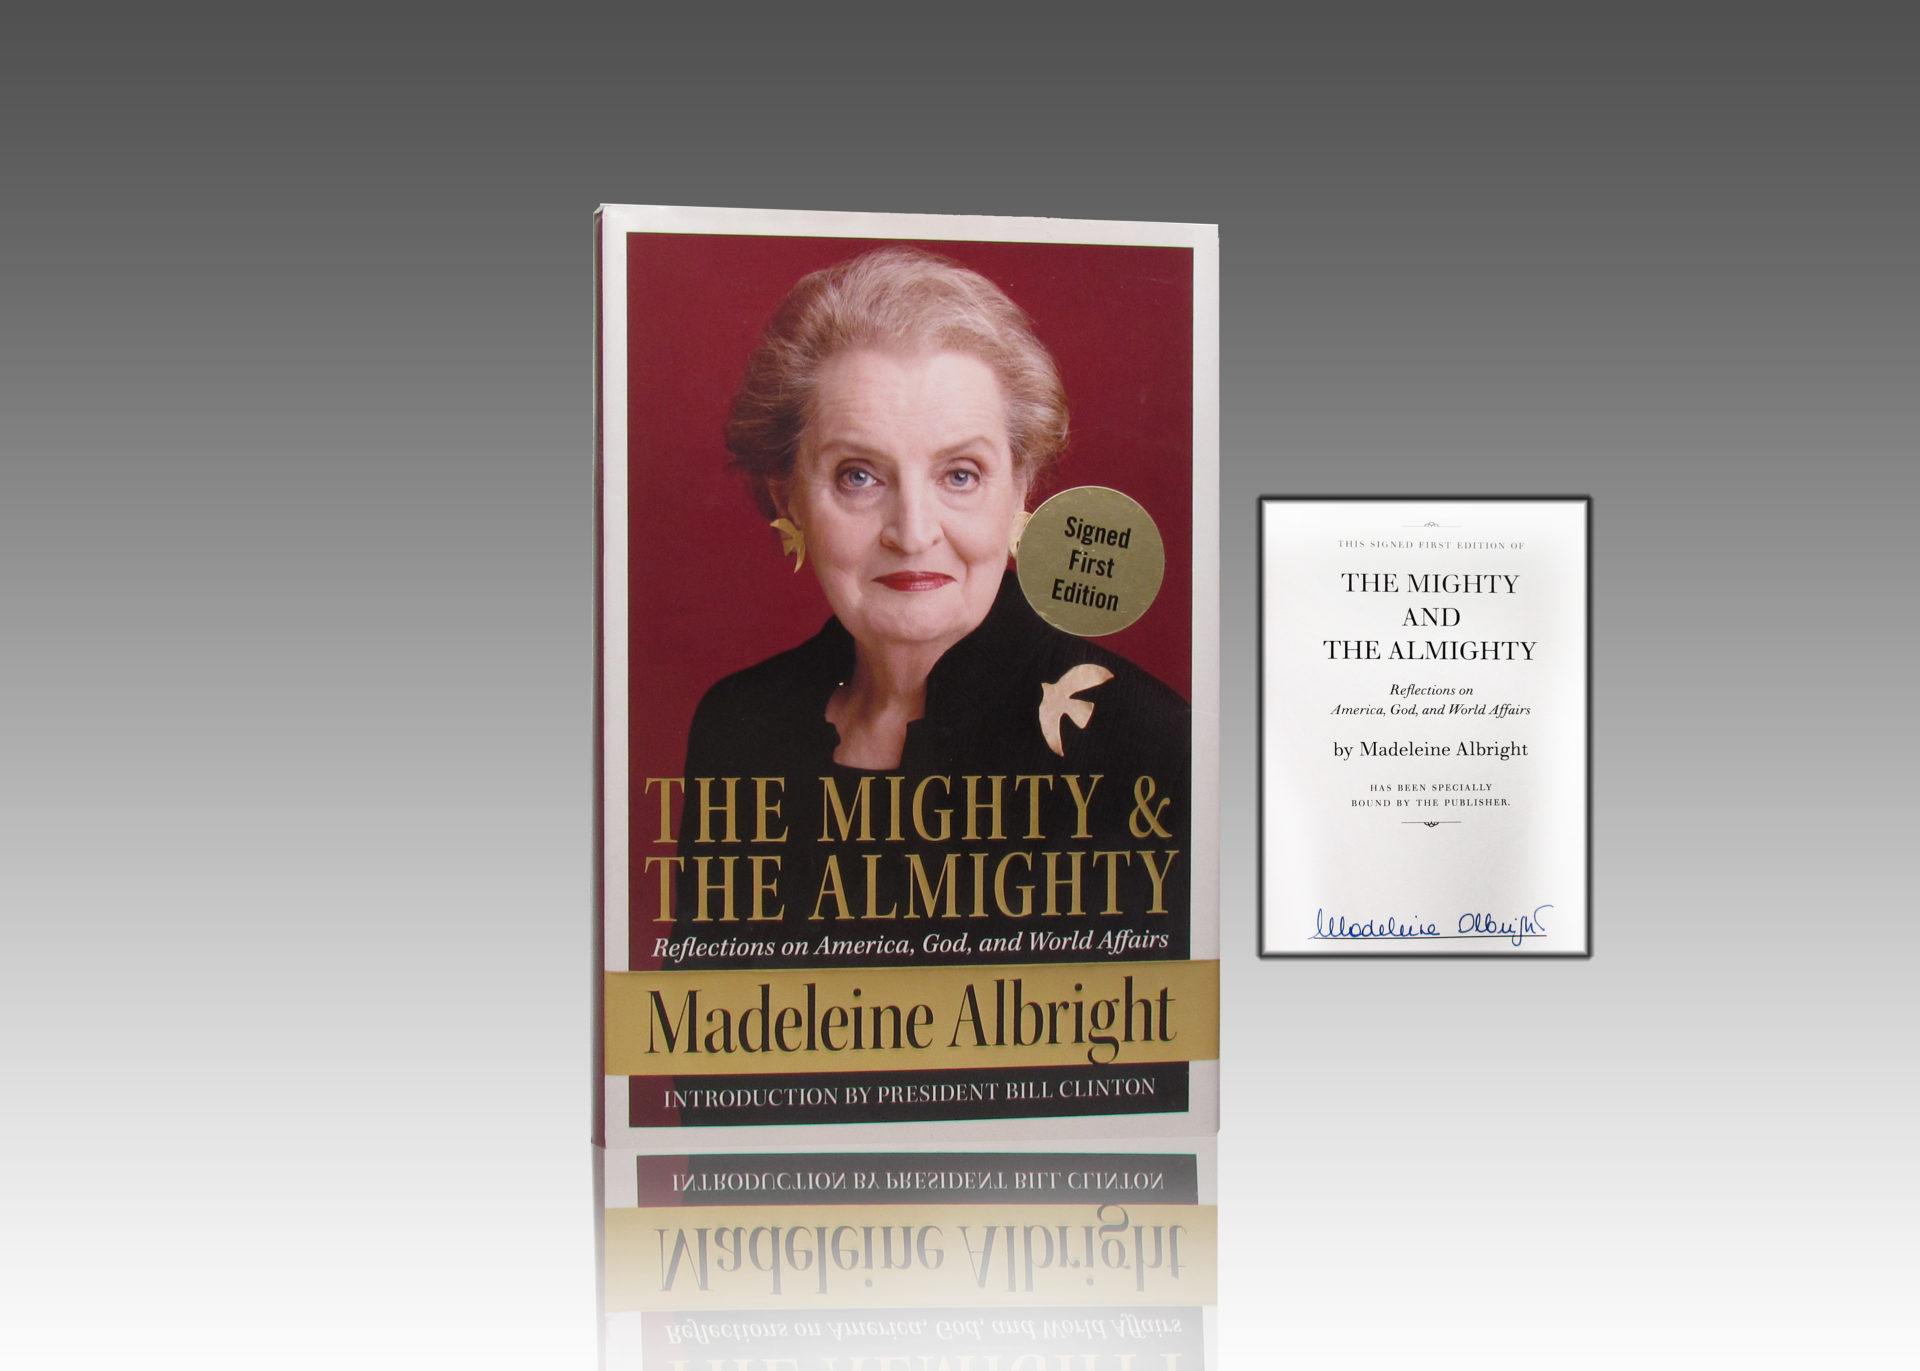 the mighty and the almighty albright madeleine